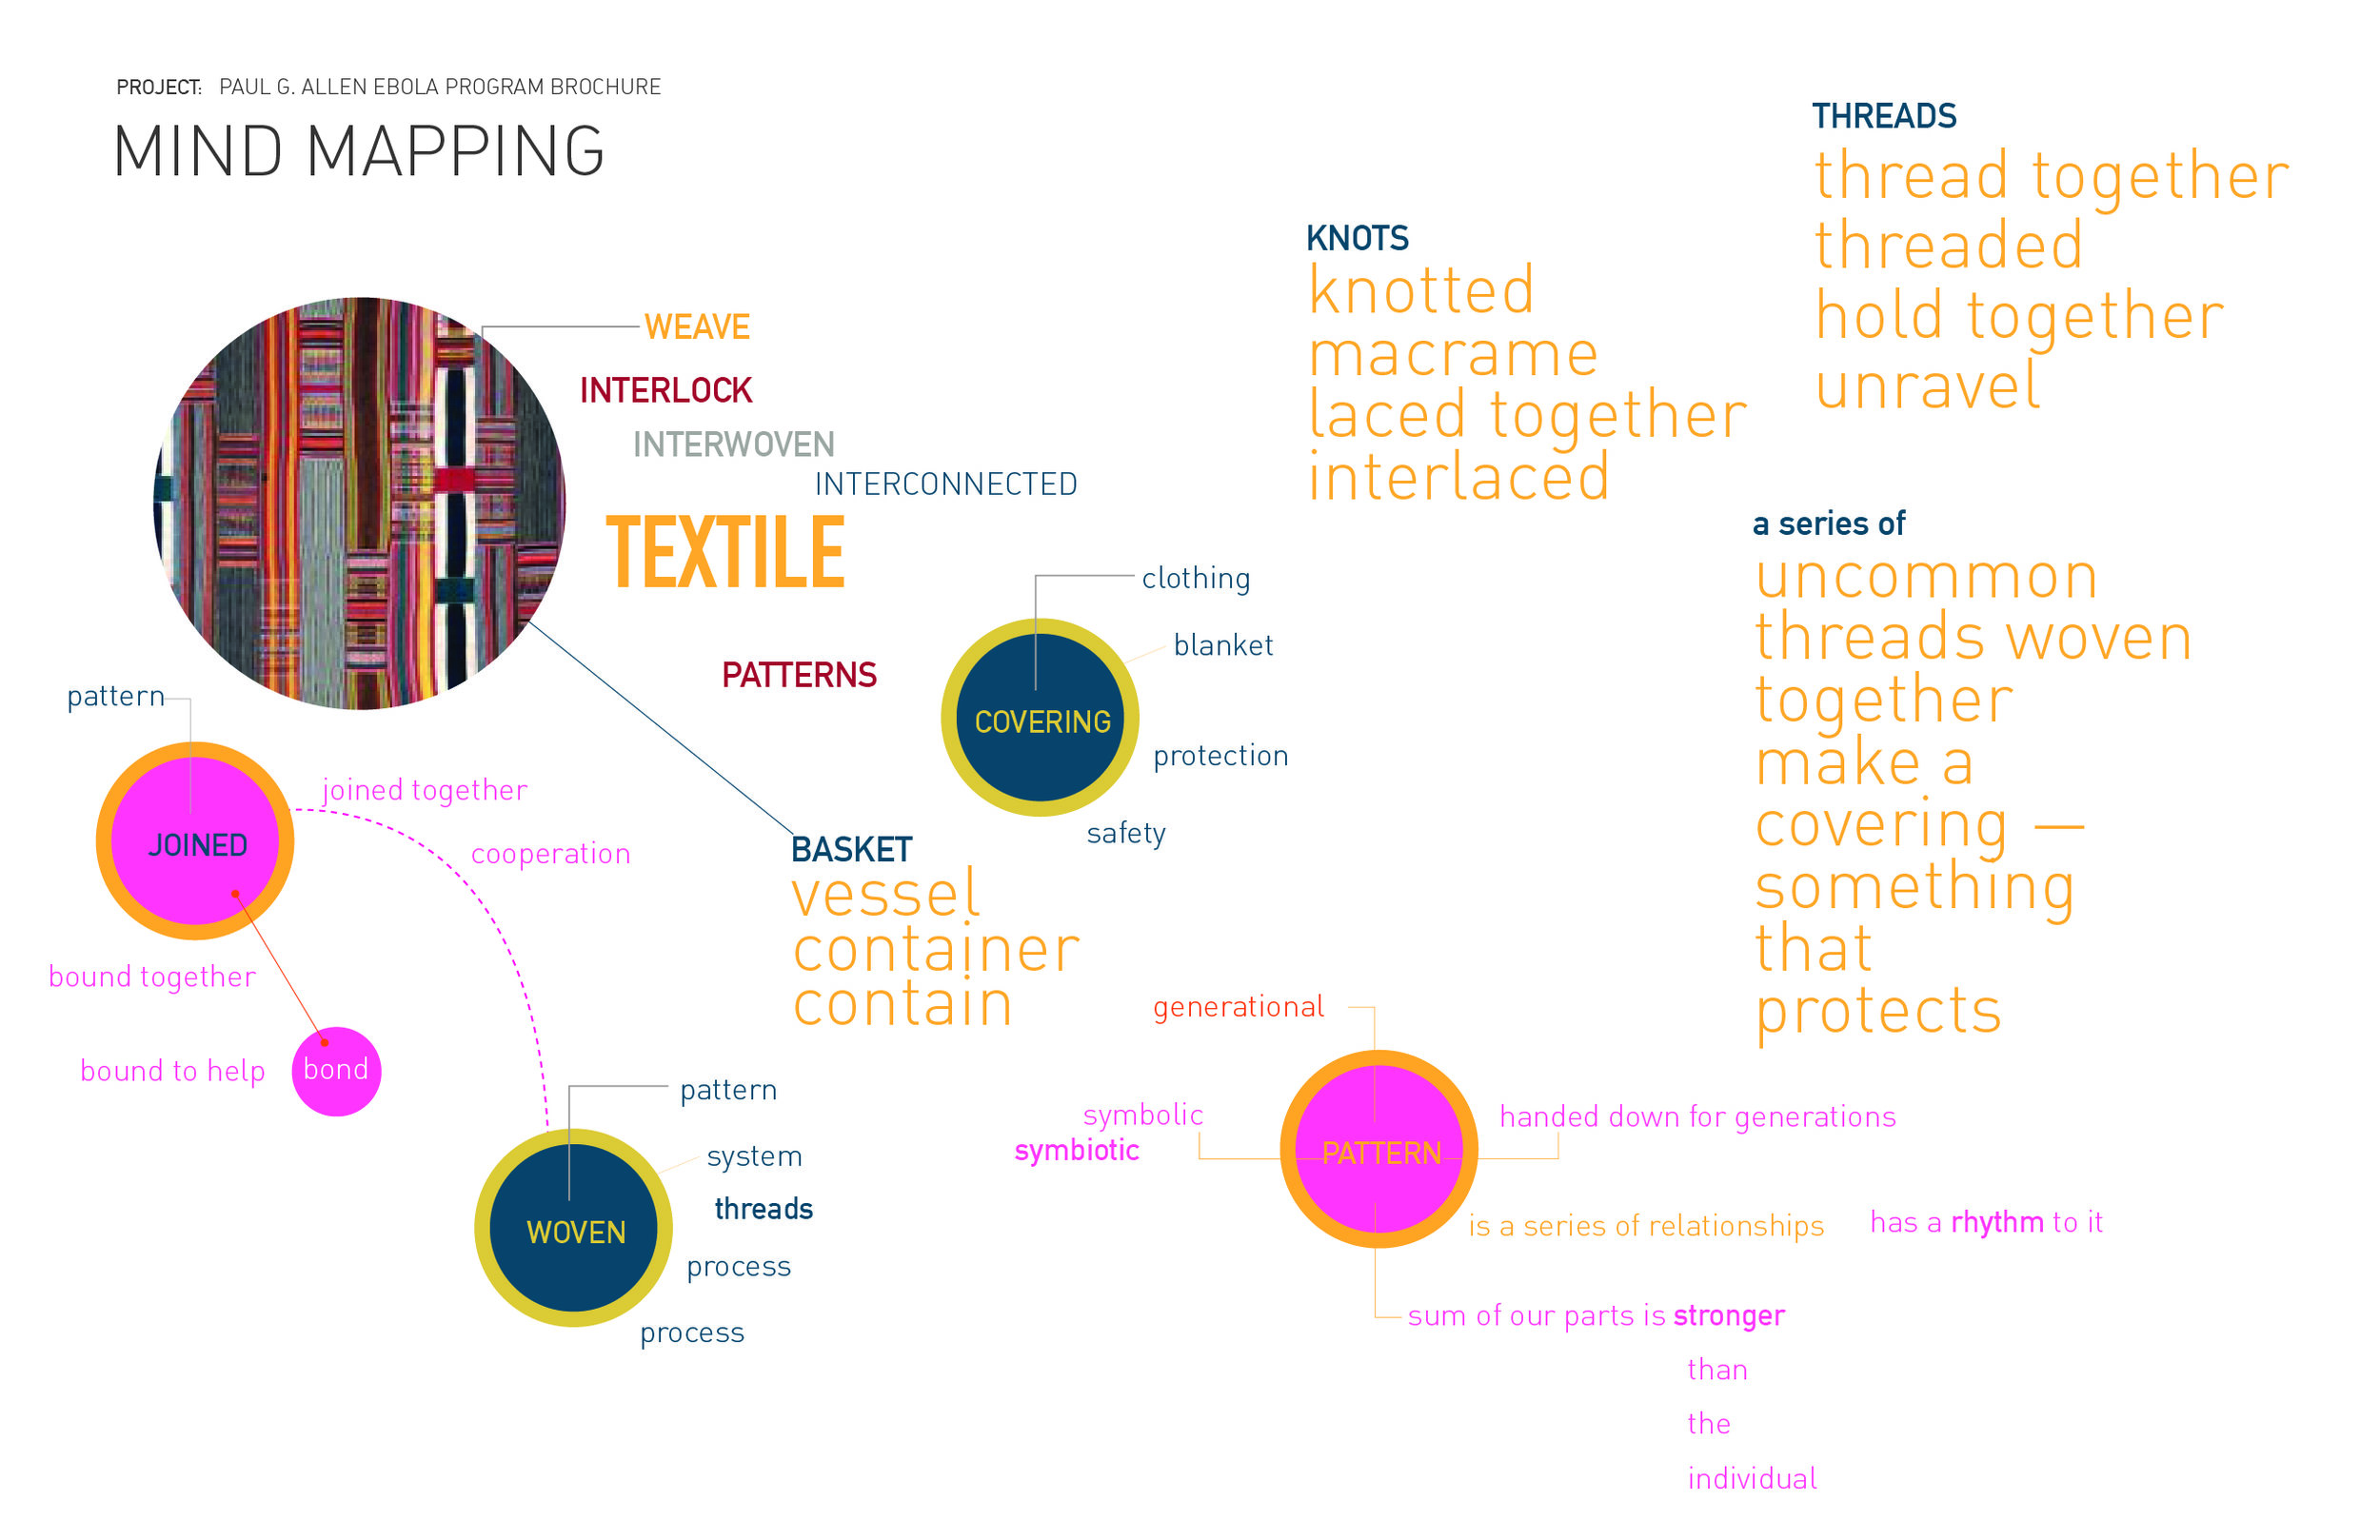 The mind mapping exercise further helped me to strengthen the concept of using textiles as a central theme in the overall design concept.